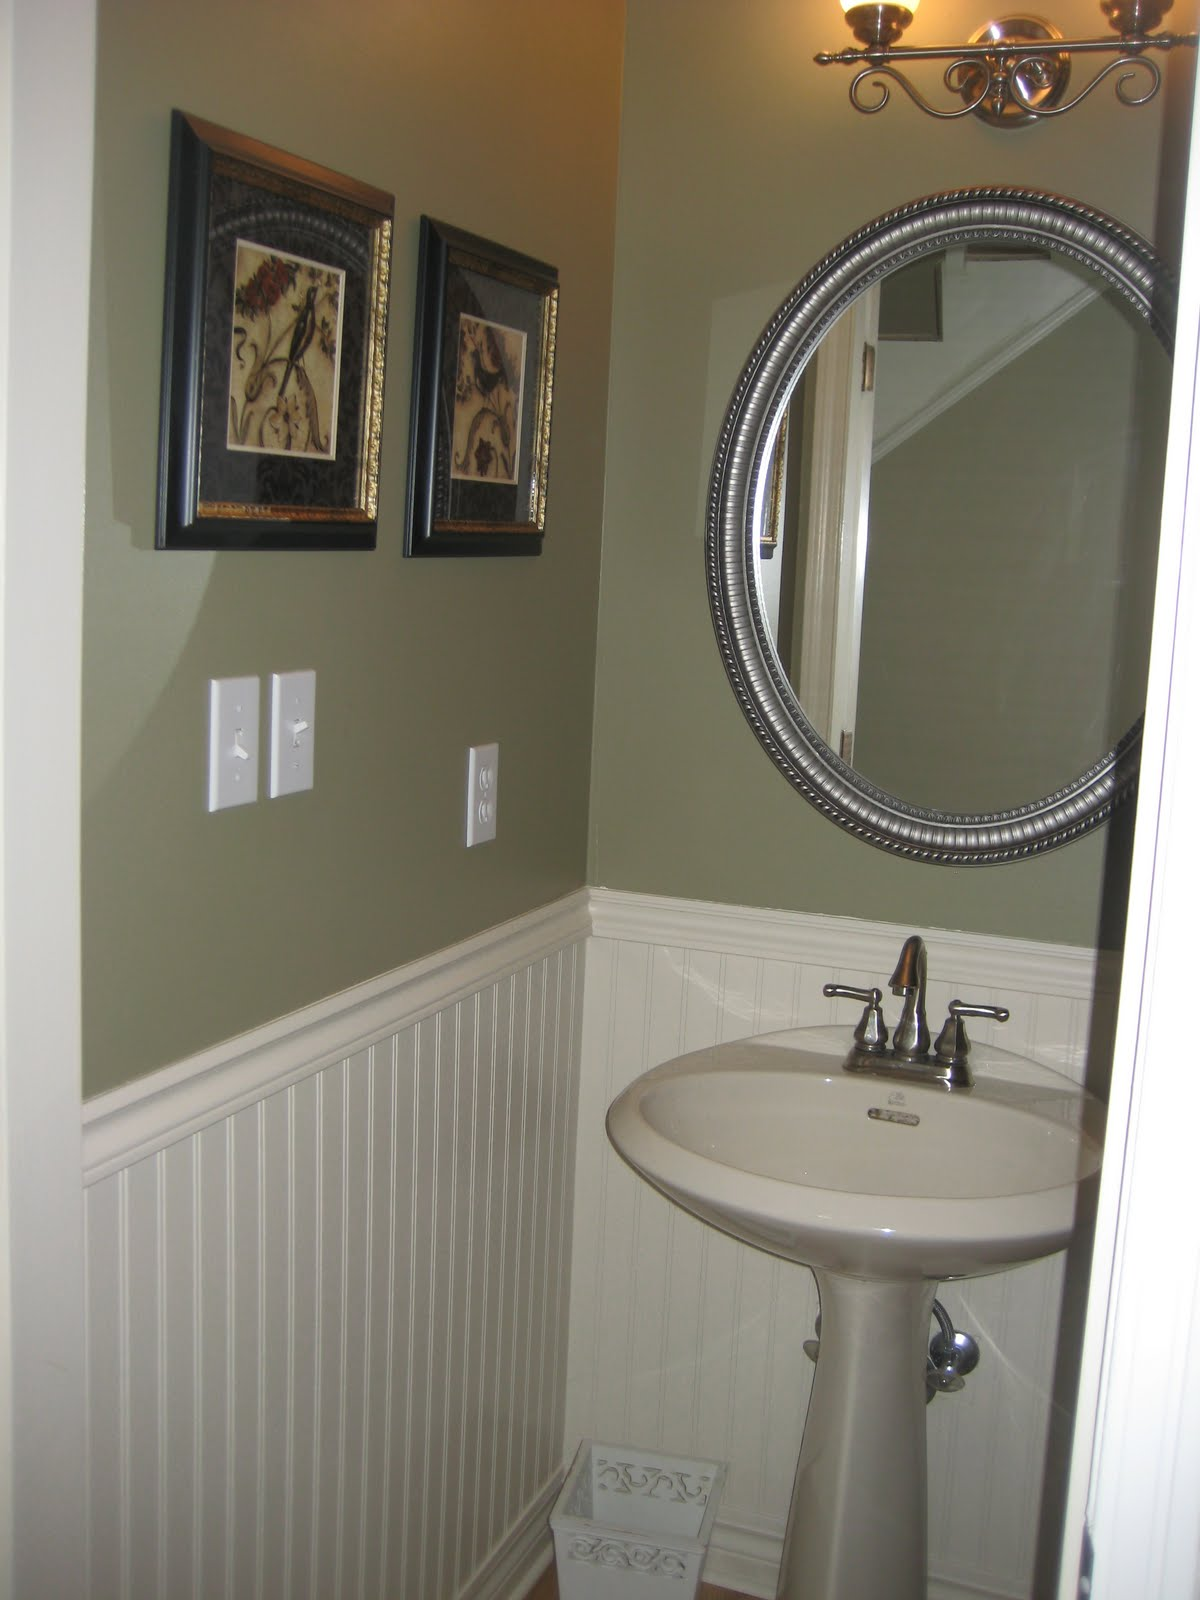 Small Bathroom Ideas Wall Paint Color Remodelaholic New Paint Job In Small Bathroom Remodel Guest Remodel